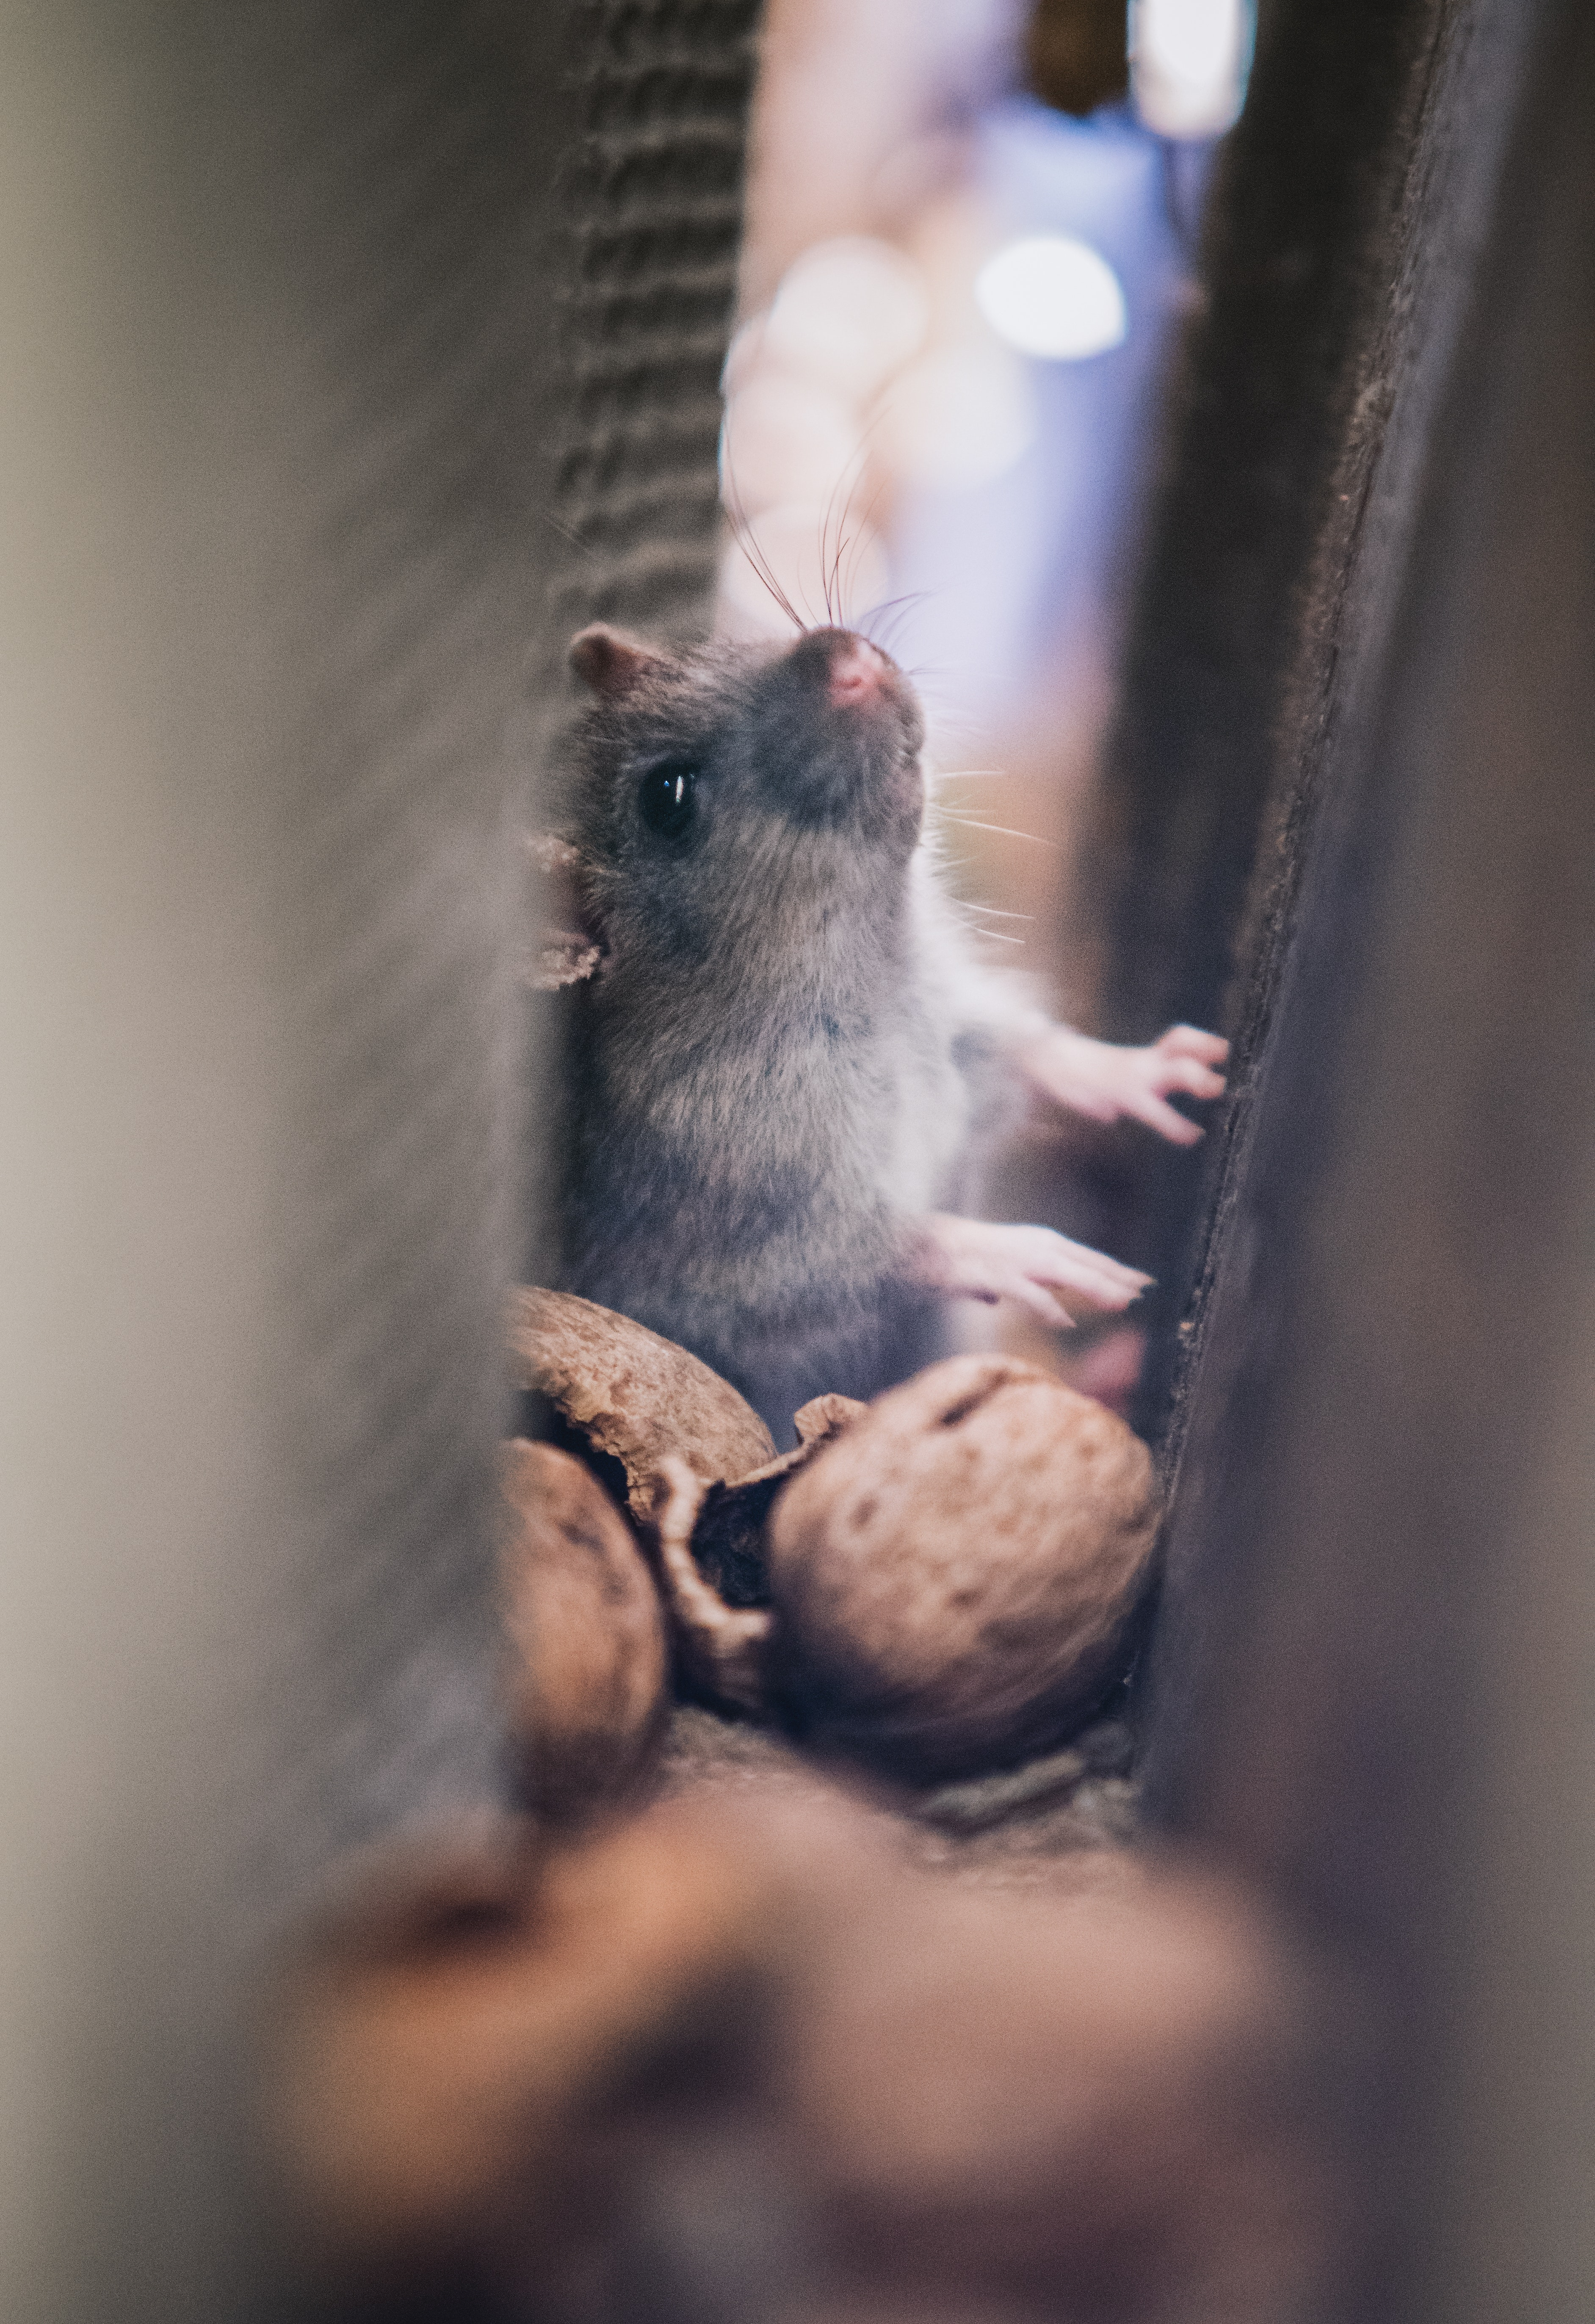 Rodents Nesting In Your HVAC Unit? Here's What To Do - B M C  / Clower